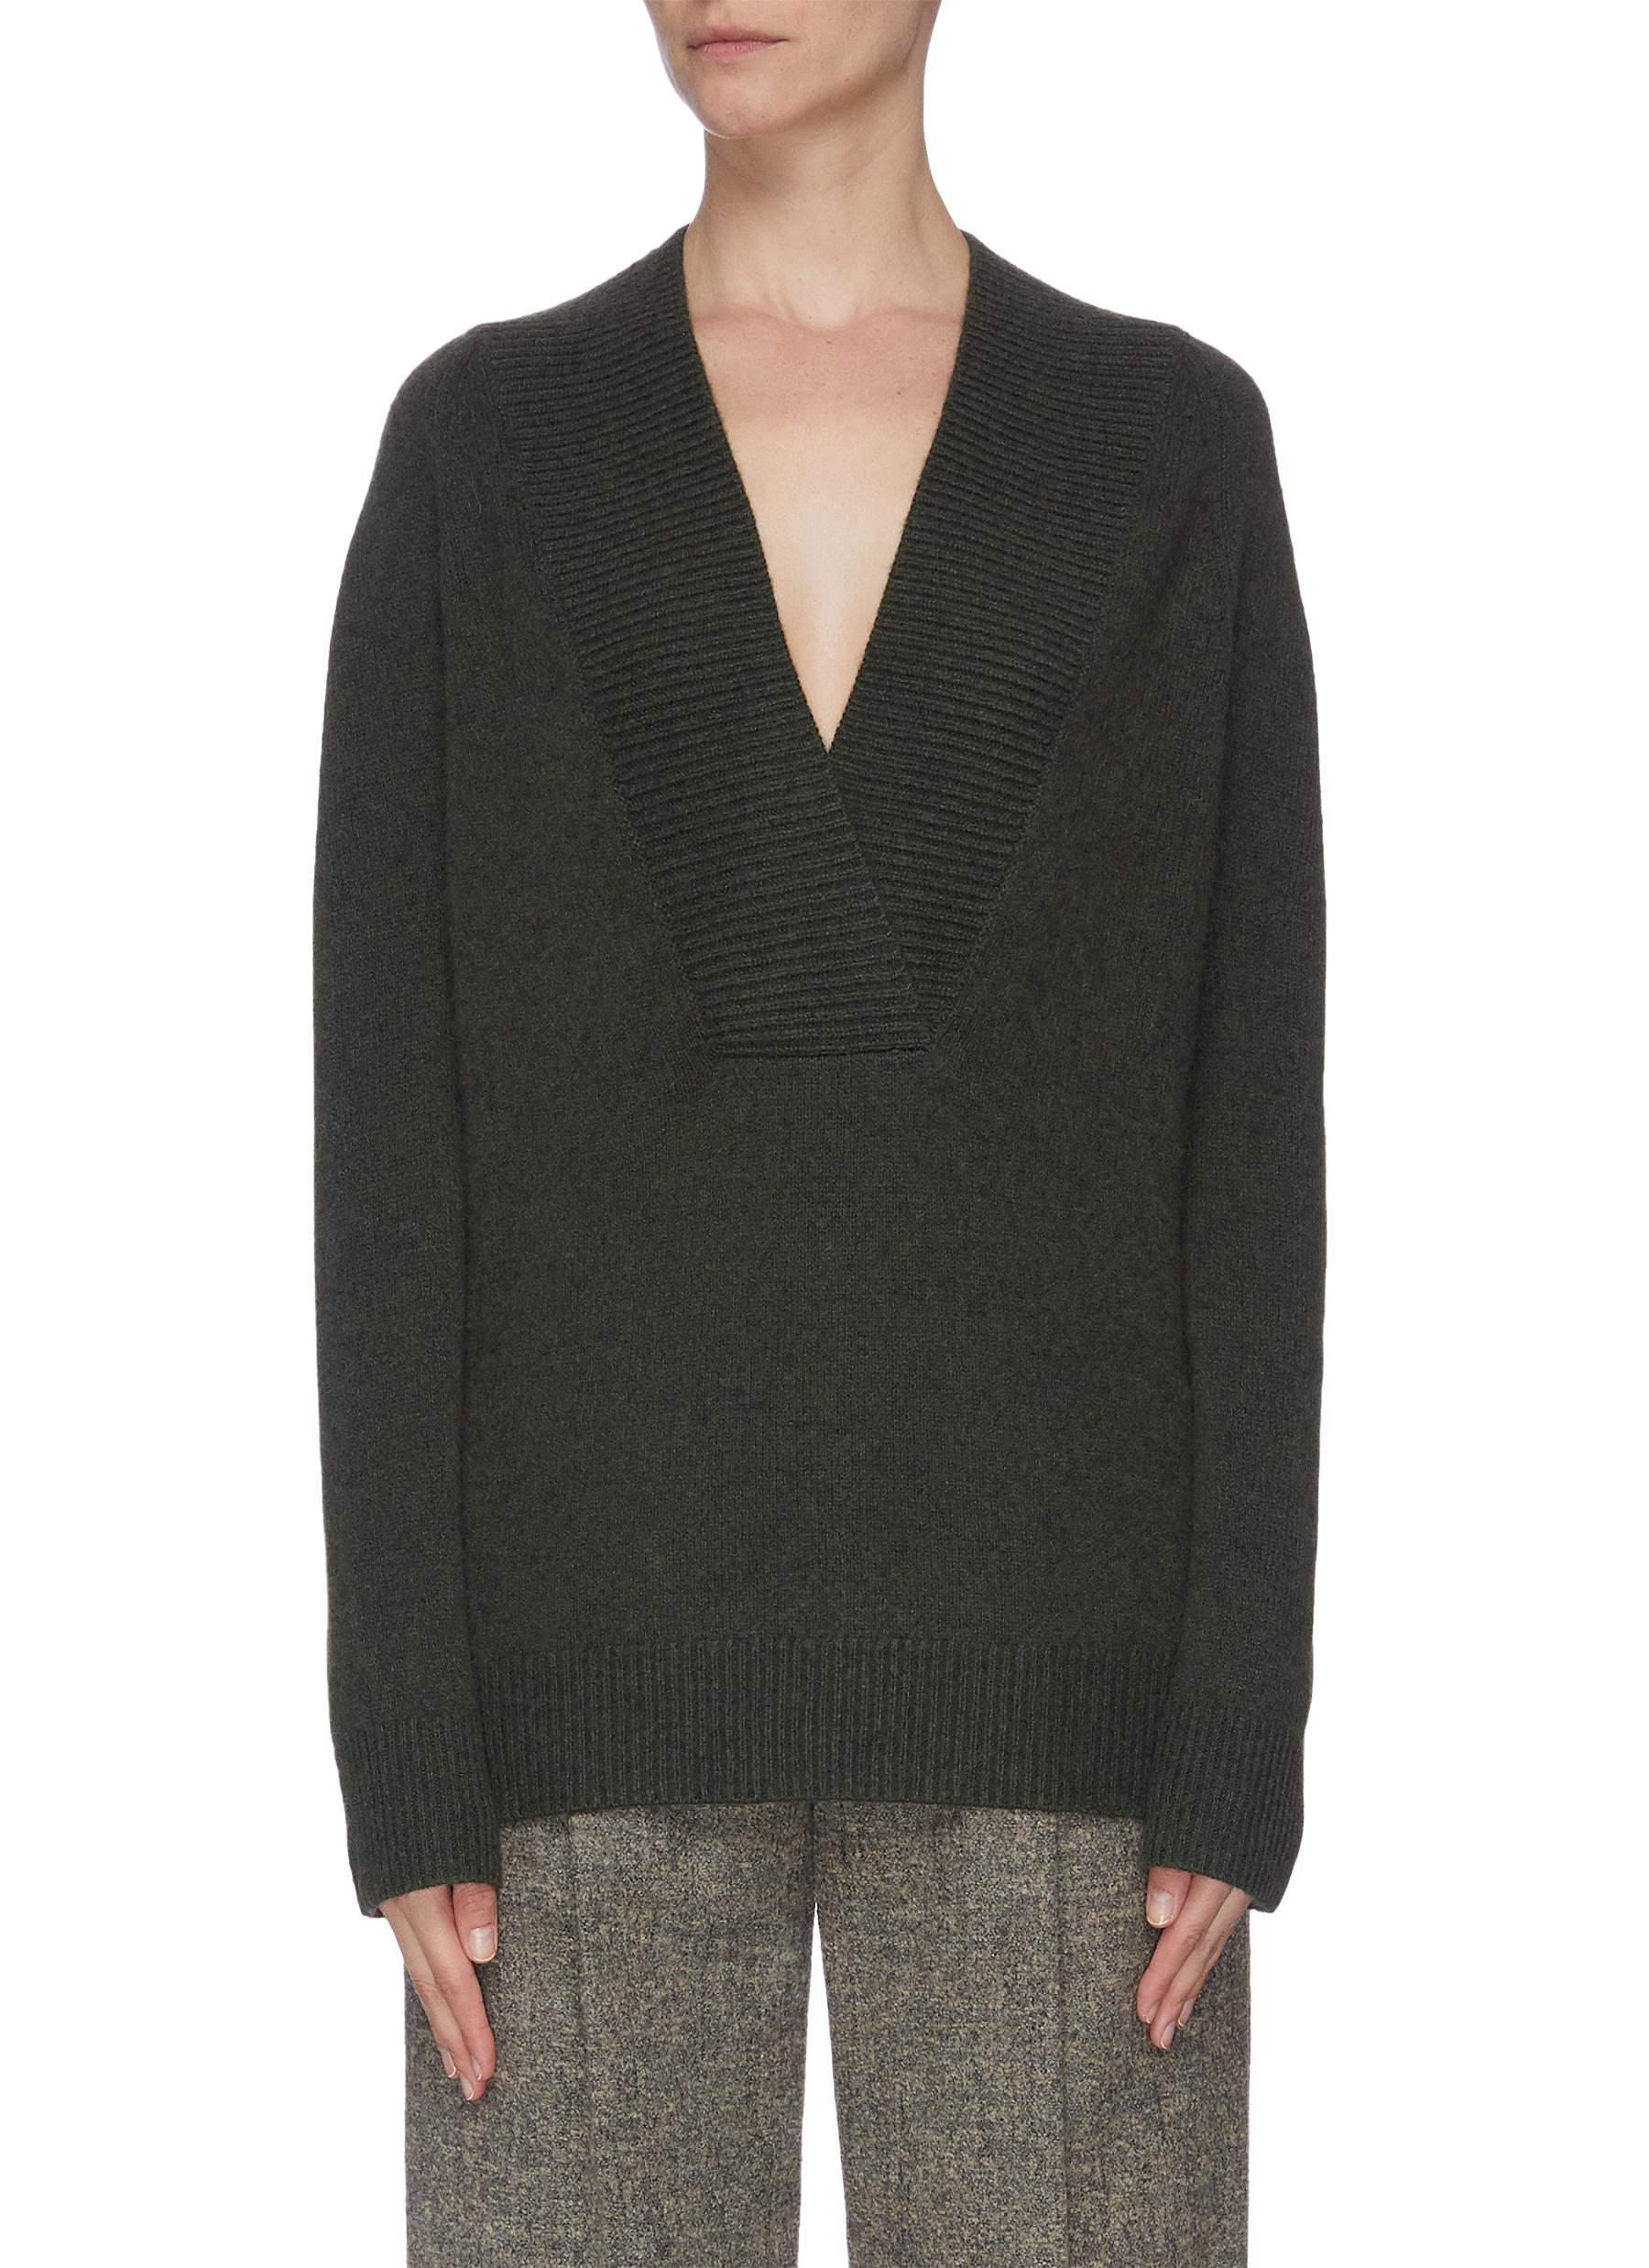 Buy Vince Knitwear Shawl collar cashmere wool blend sweater